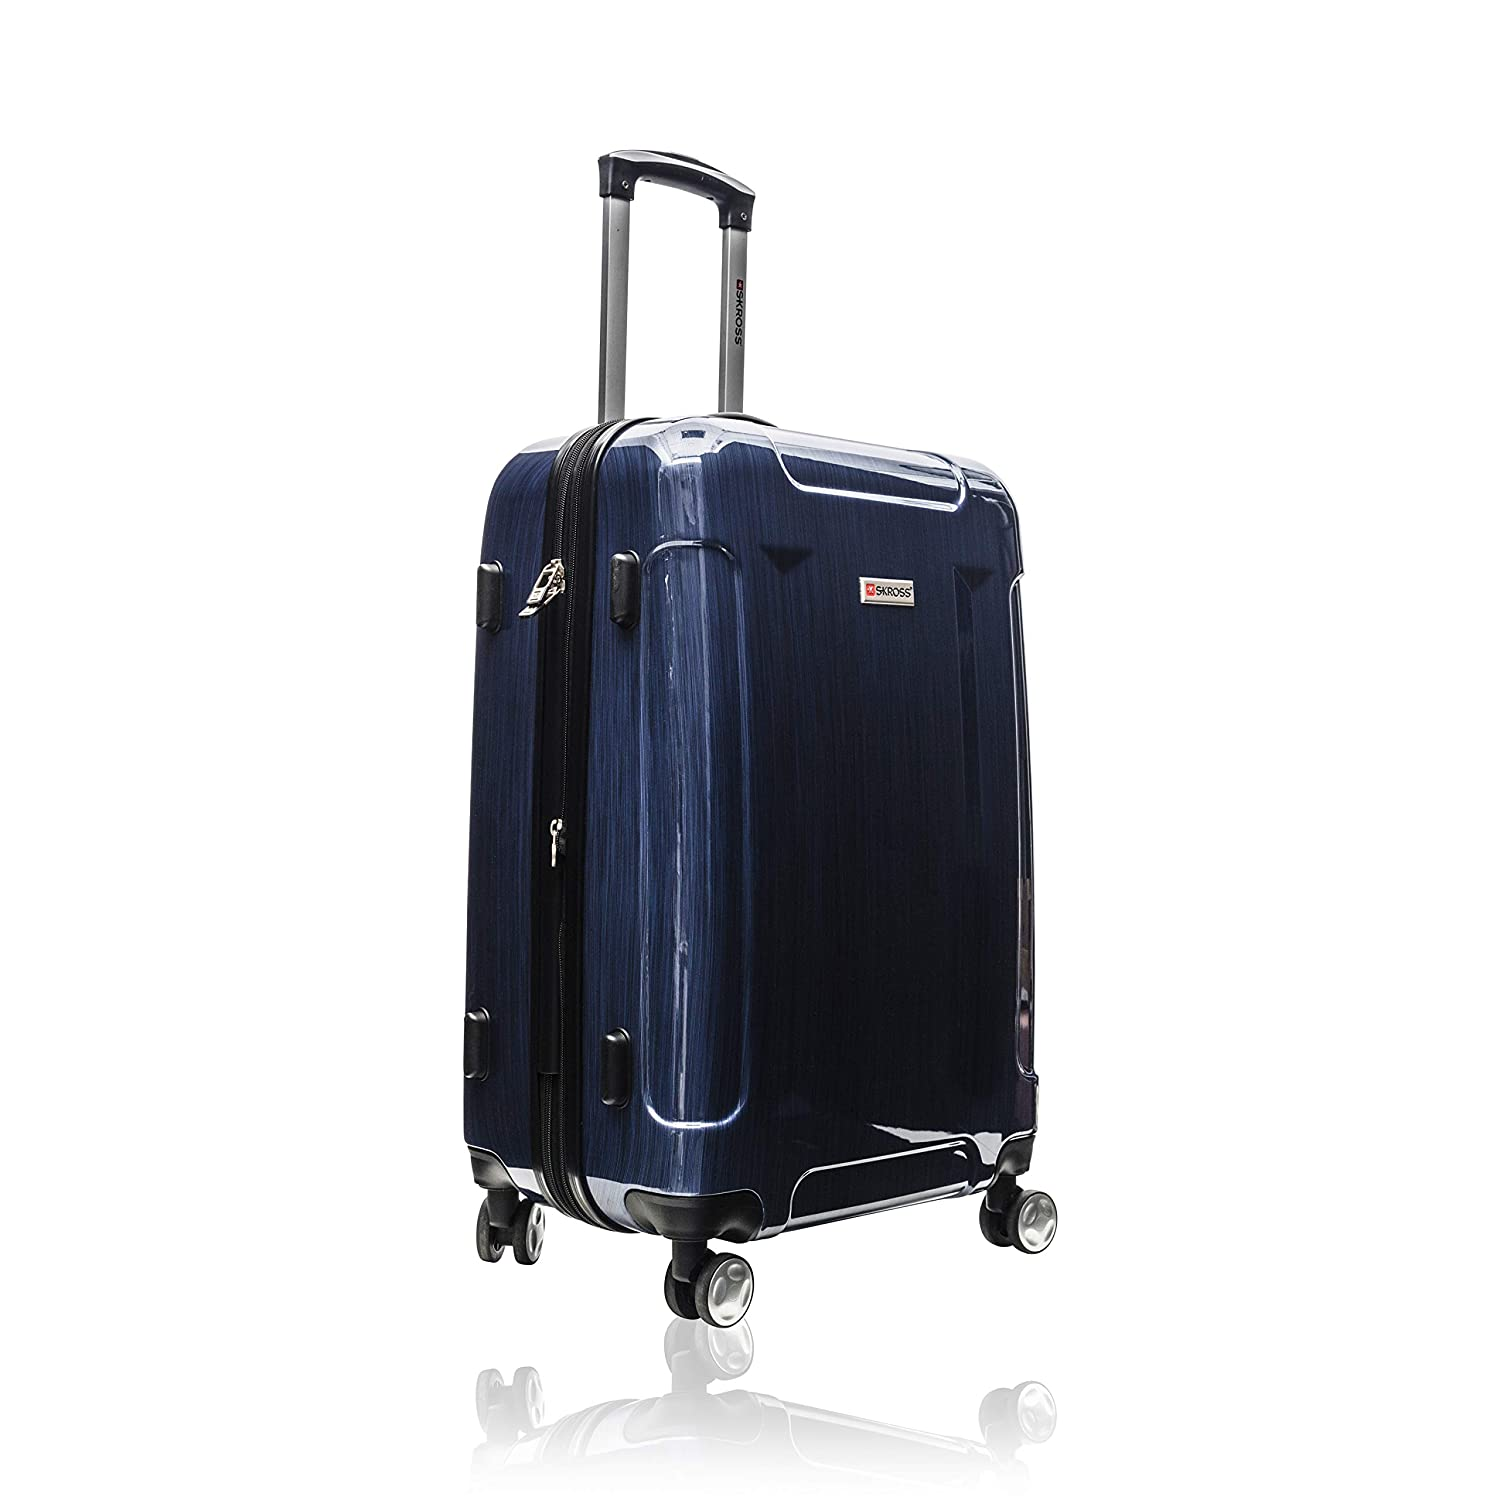 24 and 28 Luggage Set Charcoal SKROSS 3-Piece Spinner Hardside 20 Carry On